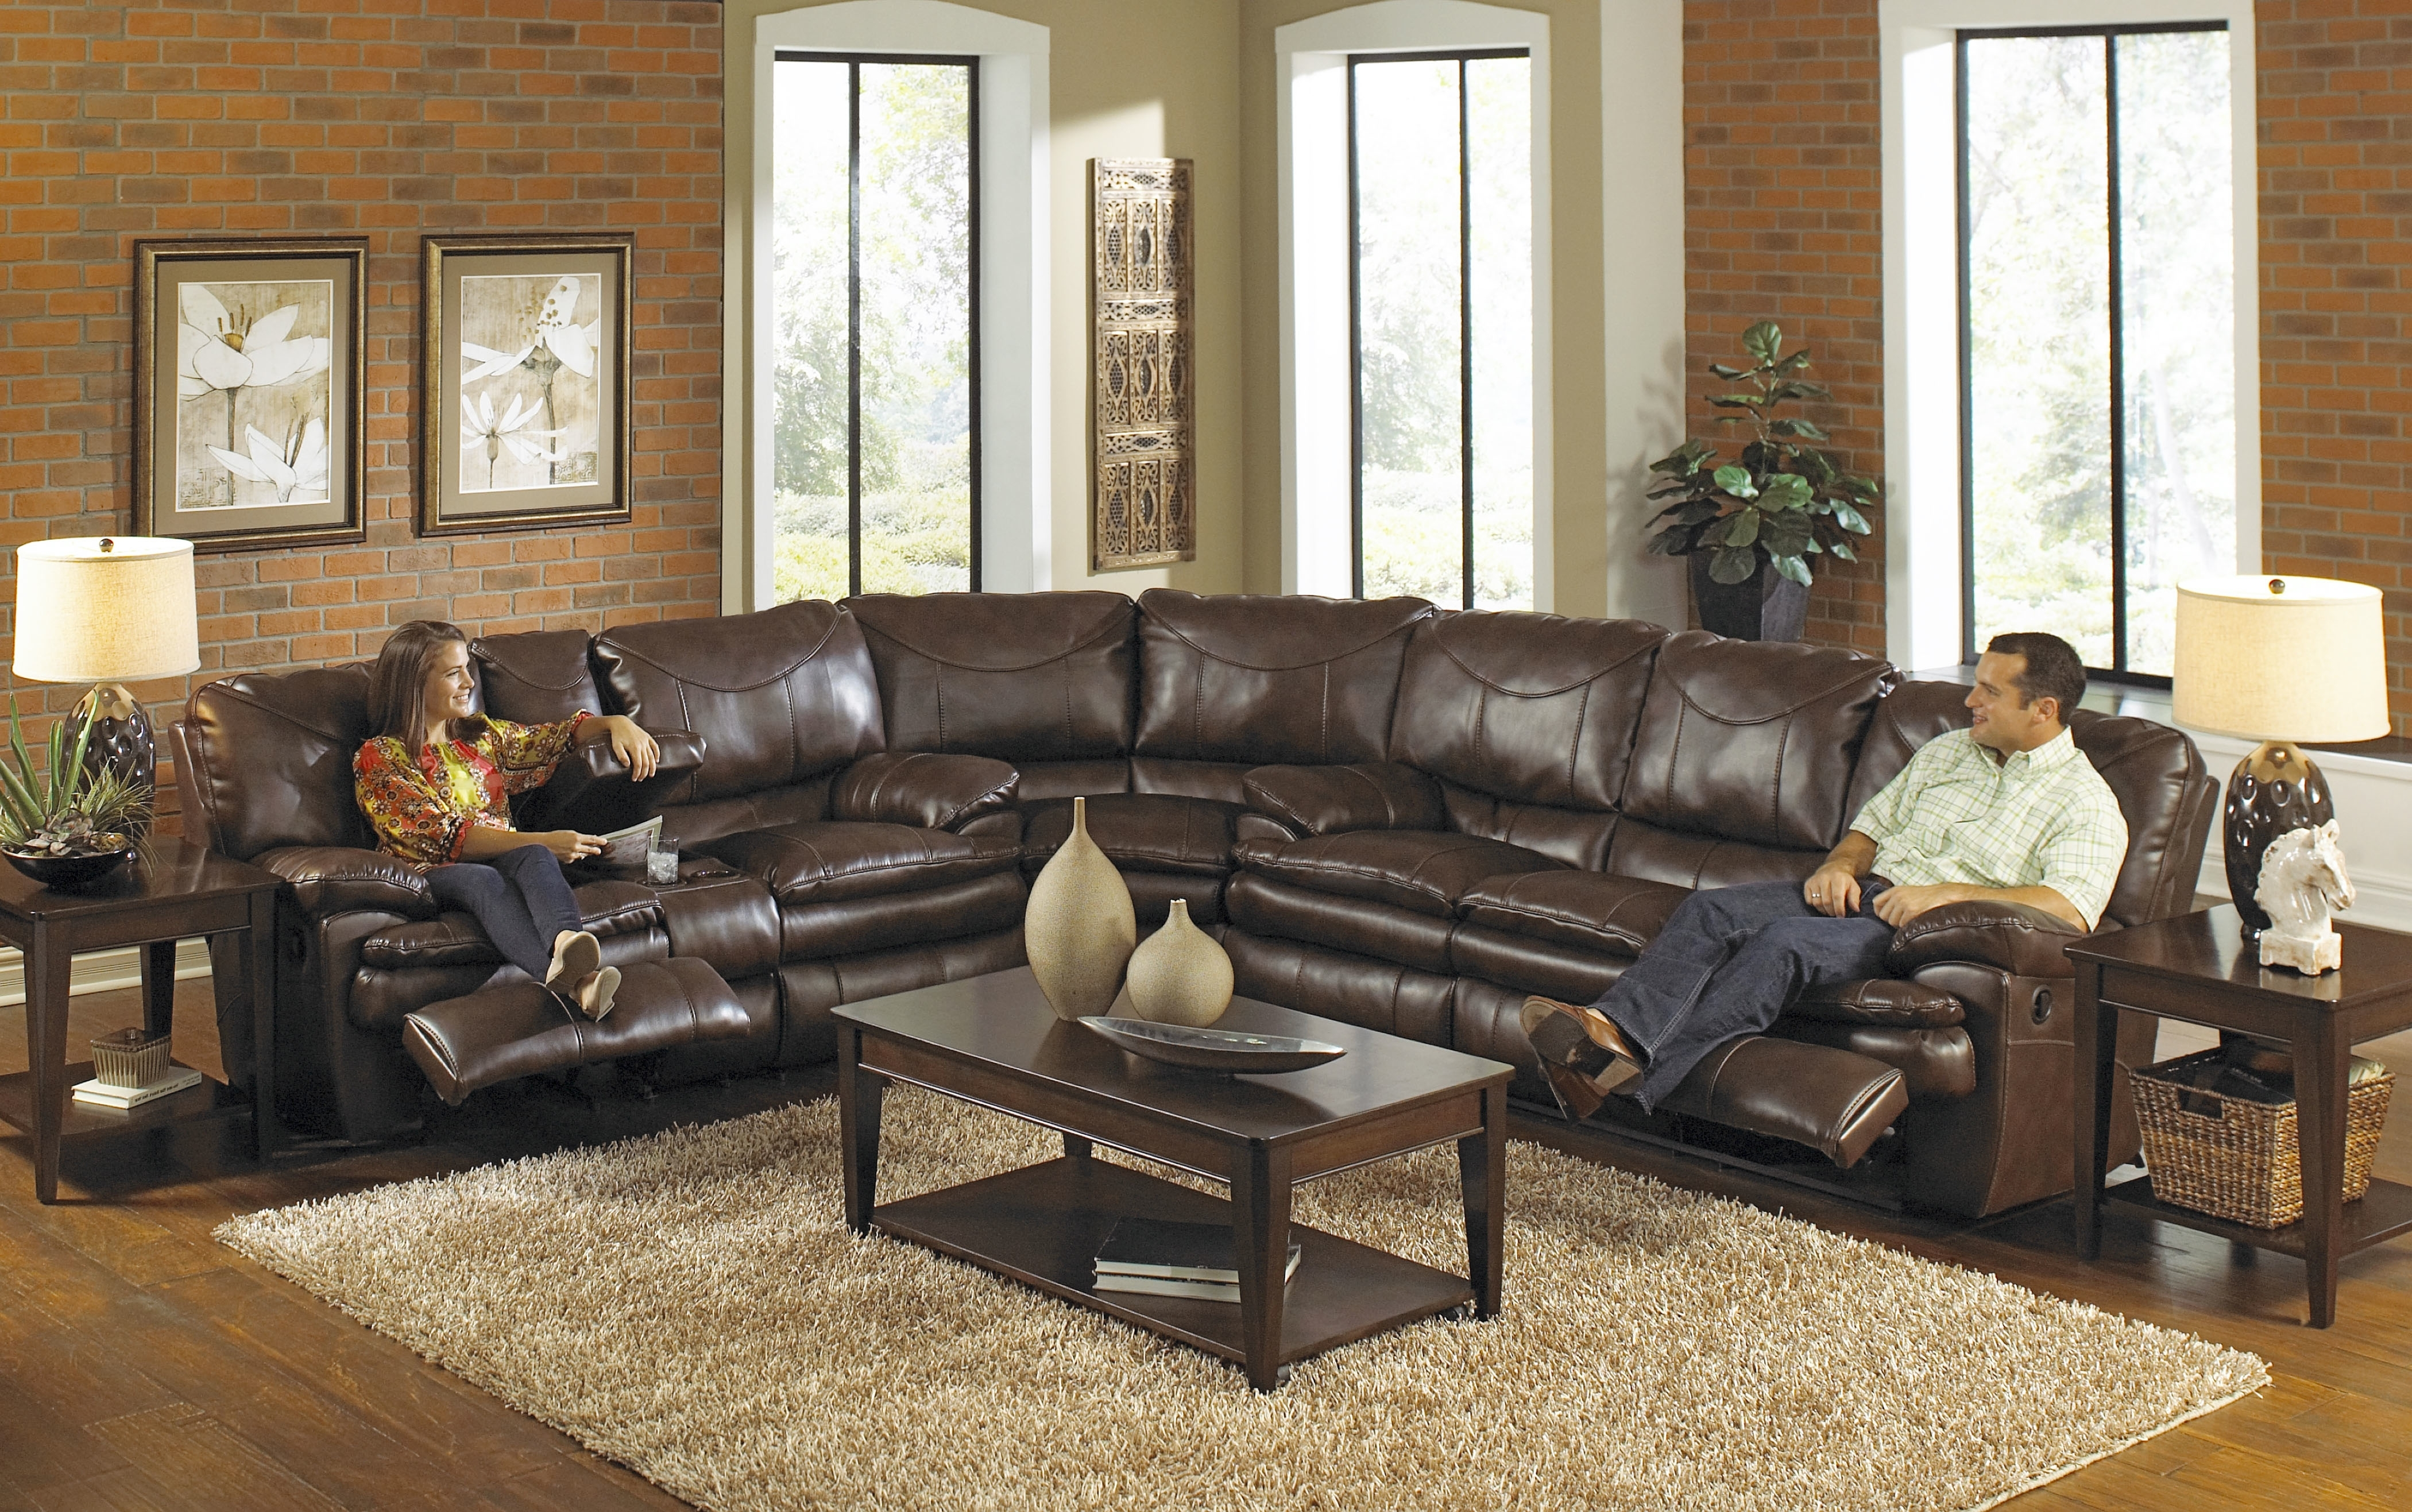 High Quality Sectional Sofas Intended For Most Recent High Quality Leather Sectional Sofas – Radiovannes (View 5 of 15)